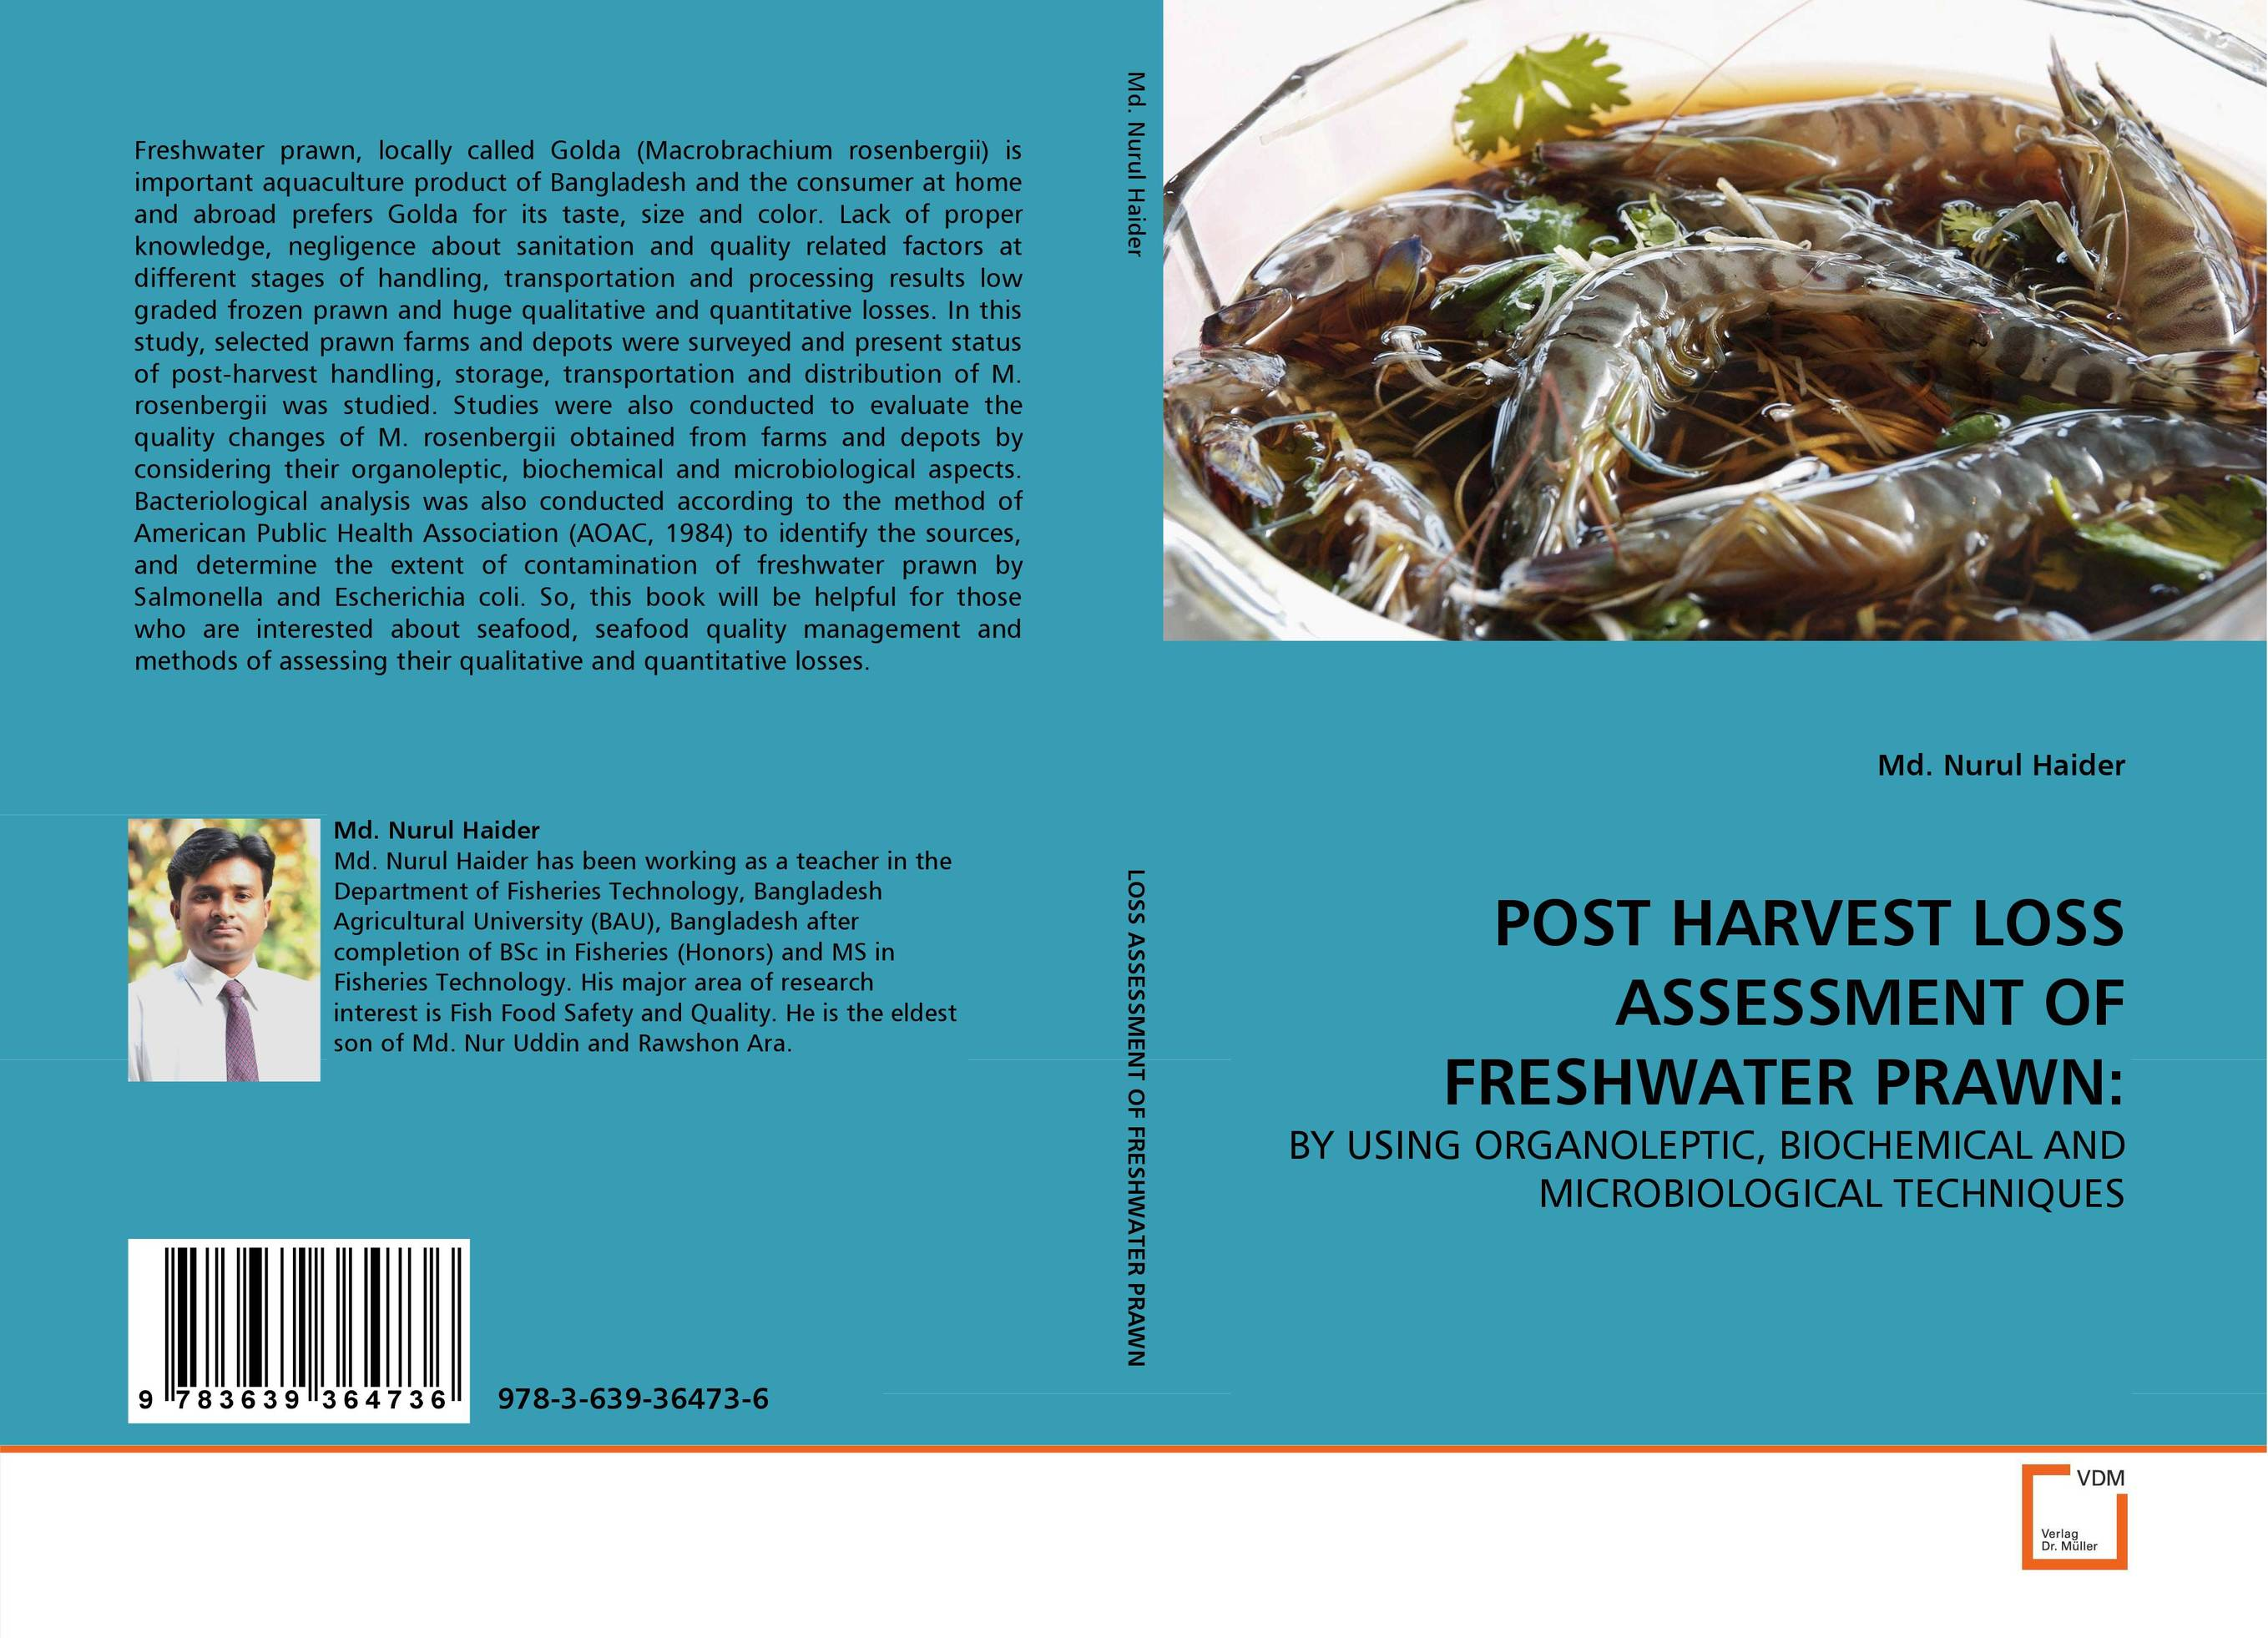 POST  HARVEST  LOSS  ASSESSMENT  OF  FRESHWATER  PRAWN: application of semiochemicals for post harvest pest management